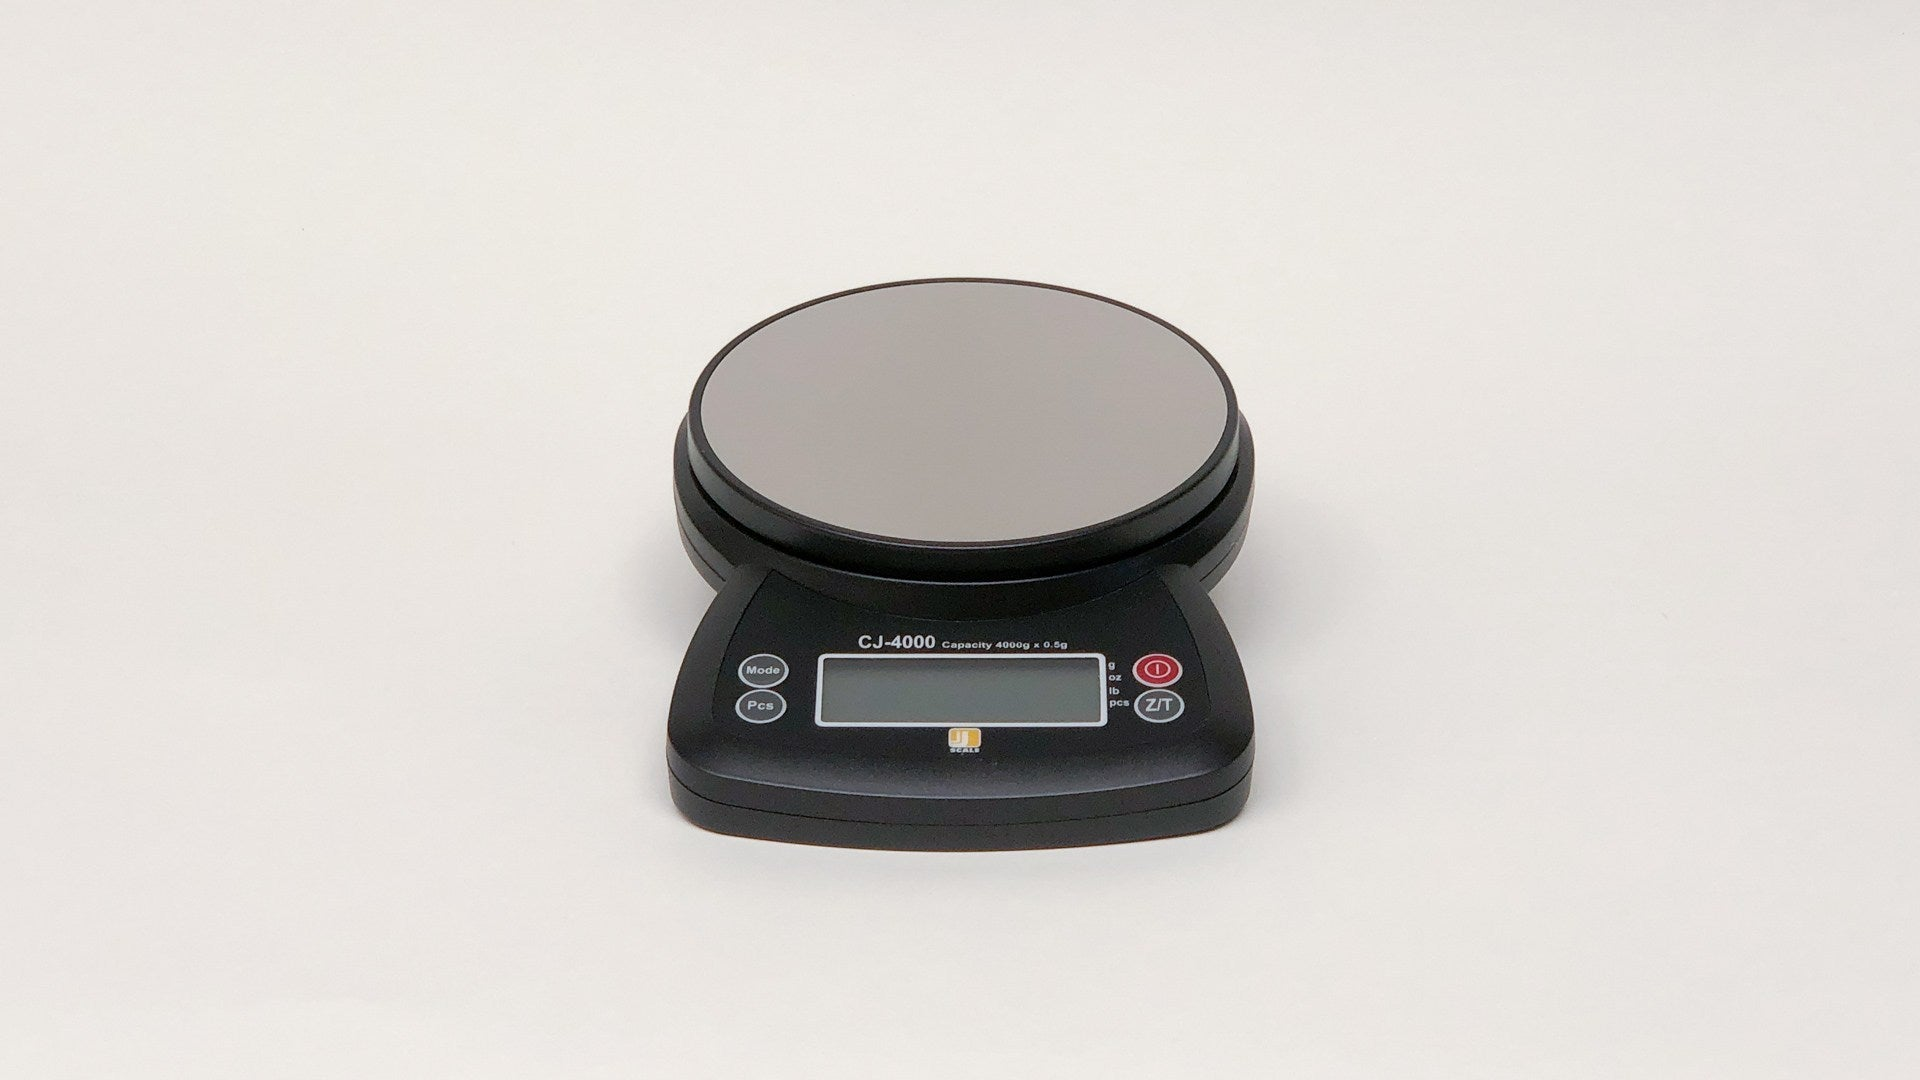 Jennings CJ-4000 Digital Scale